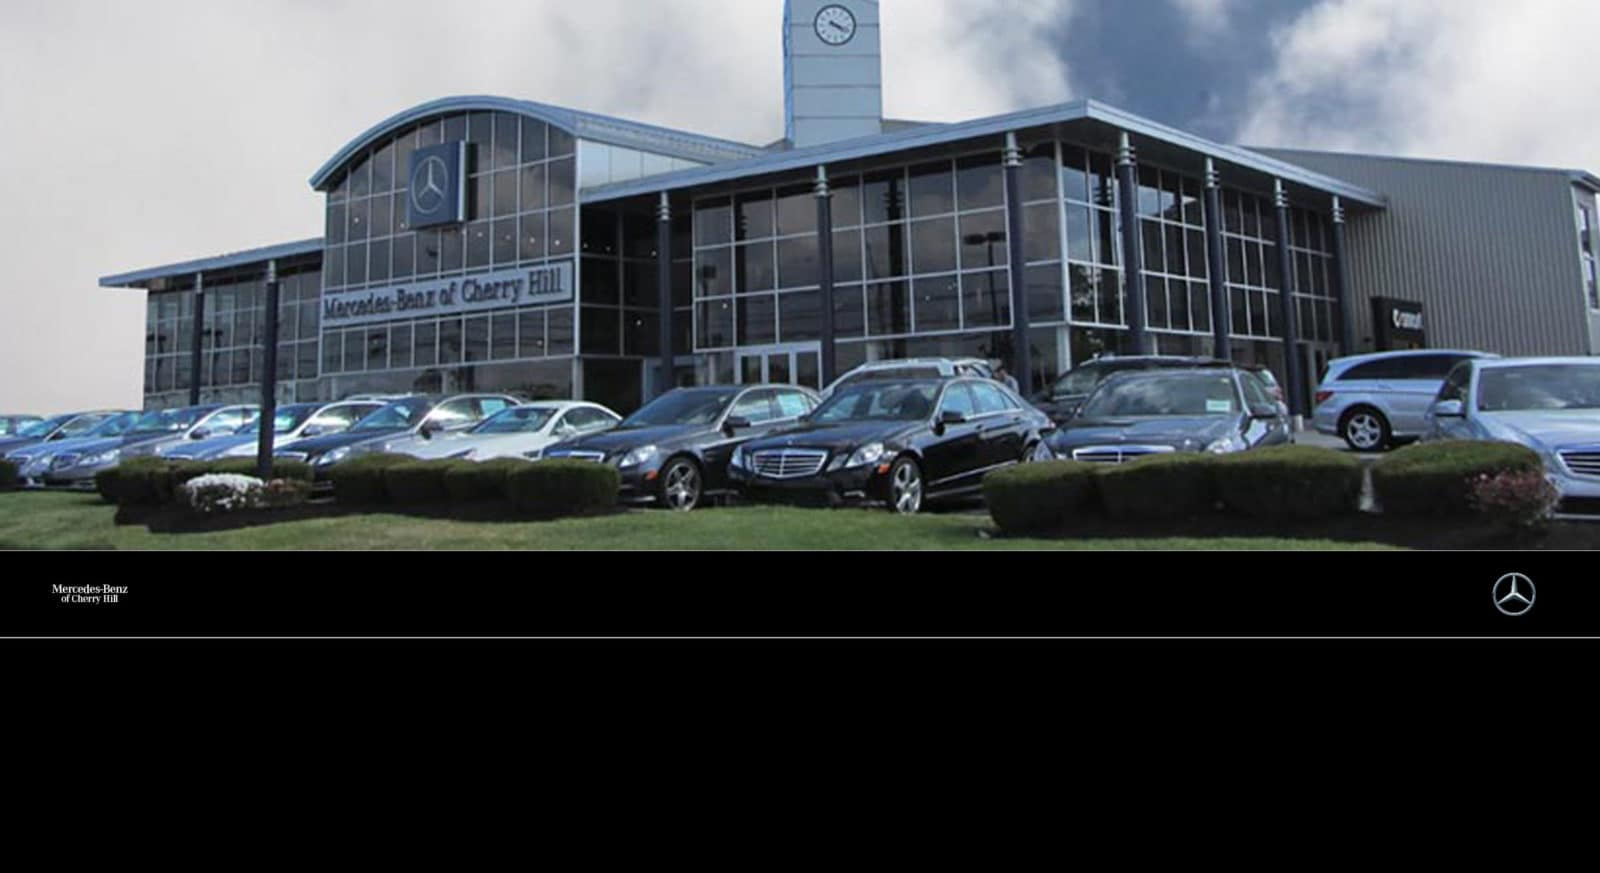 Mercedes benz of cherry hill nj new used car dealer for Mercedes benz dealer northern blvd